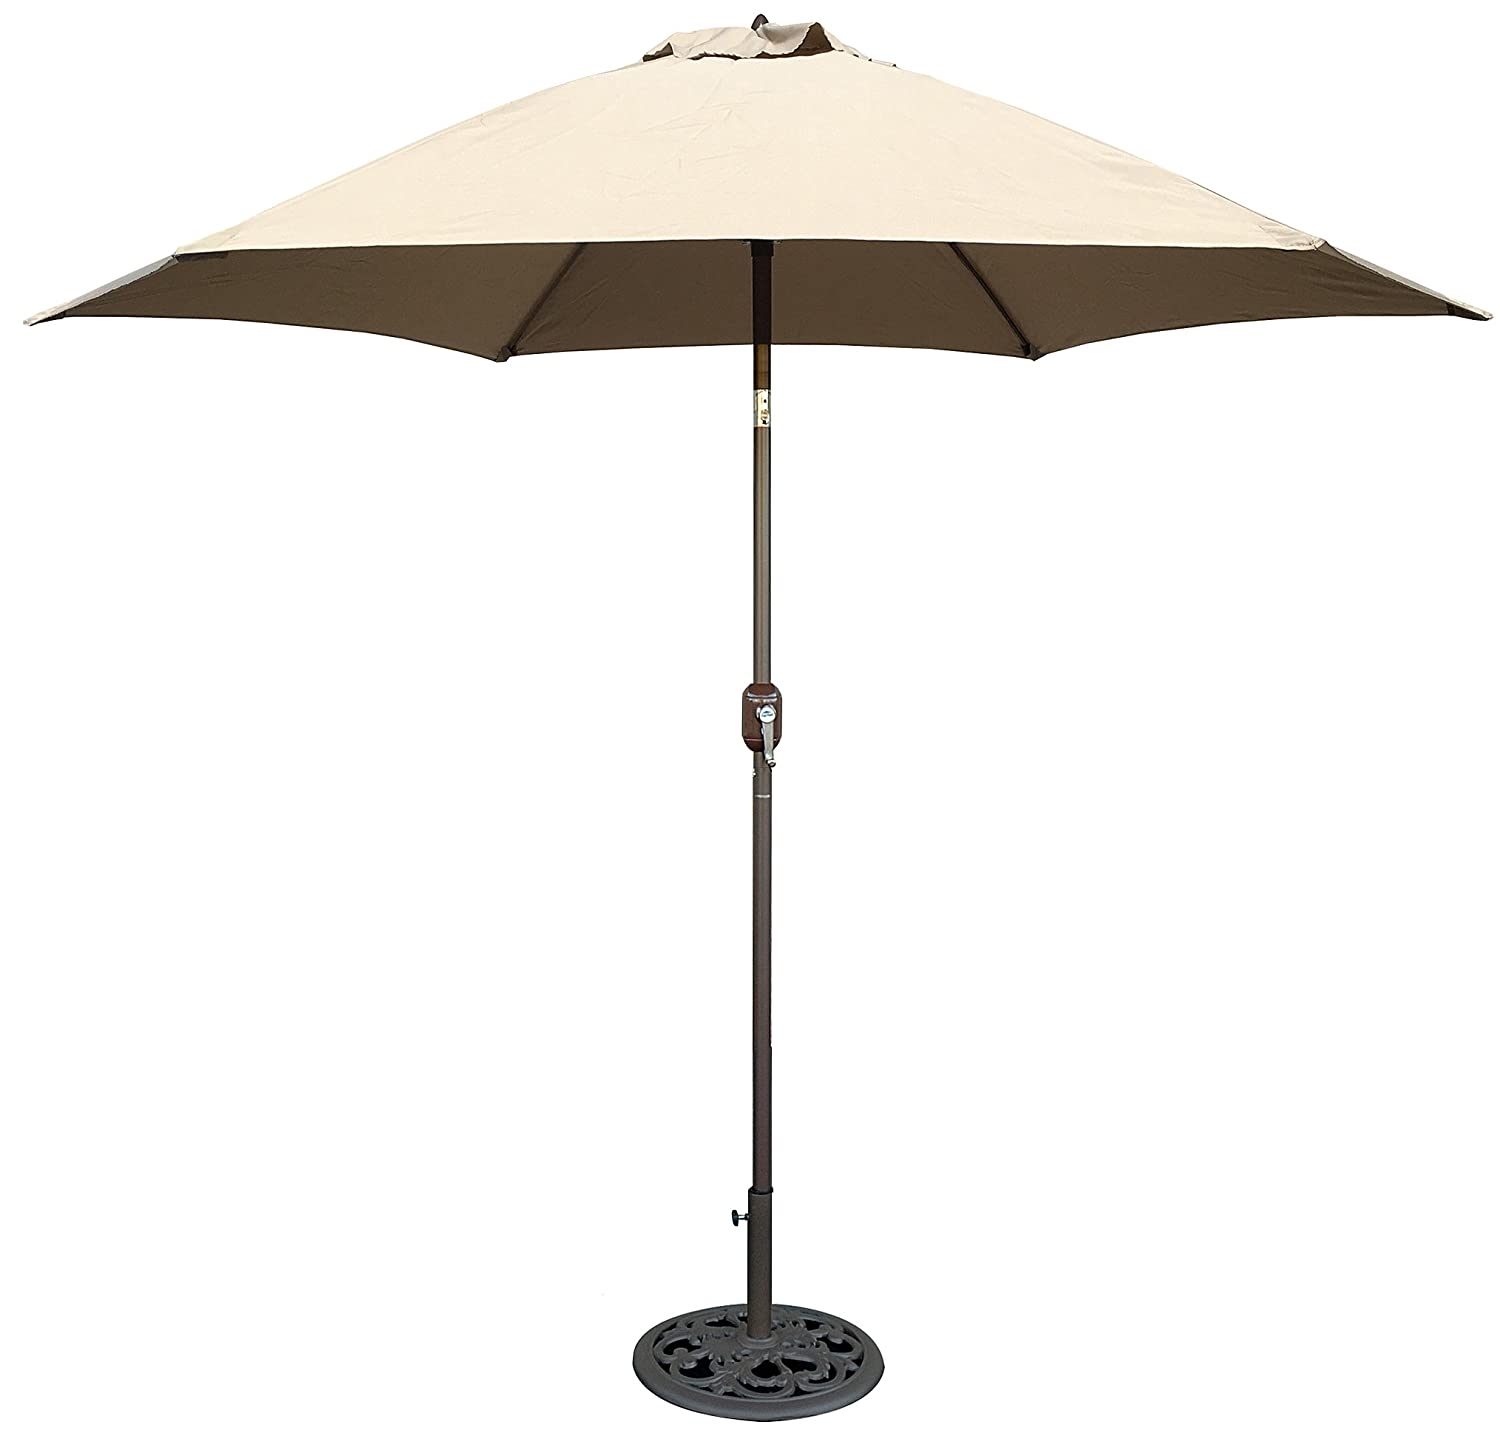 Amazon.com  Tropishade 9 ft Bronze Aluminum Patio Umbrella with Beige Polyester Cover  Patio Umbrellas  Garden u0026 Outdoor  sc 1 st  Amazon.com : aluminum patio umbrella - thejasonspencertrust.org